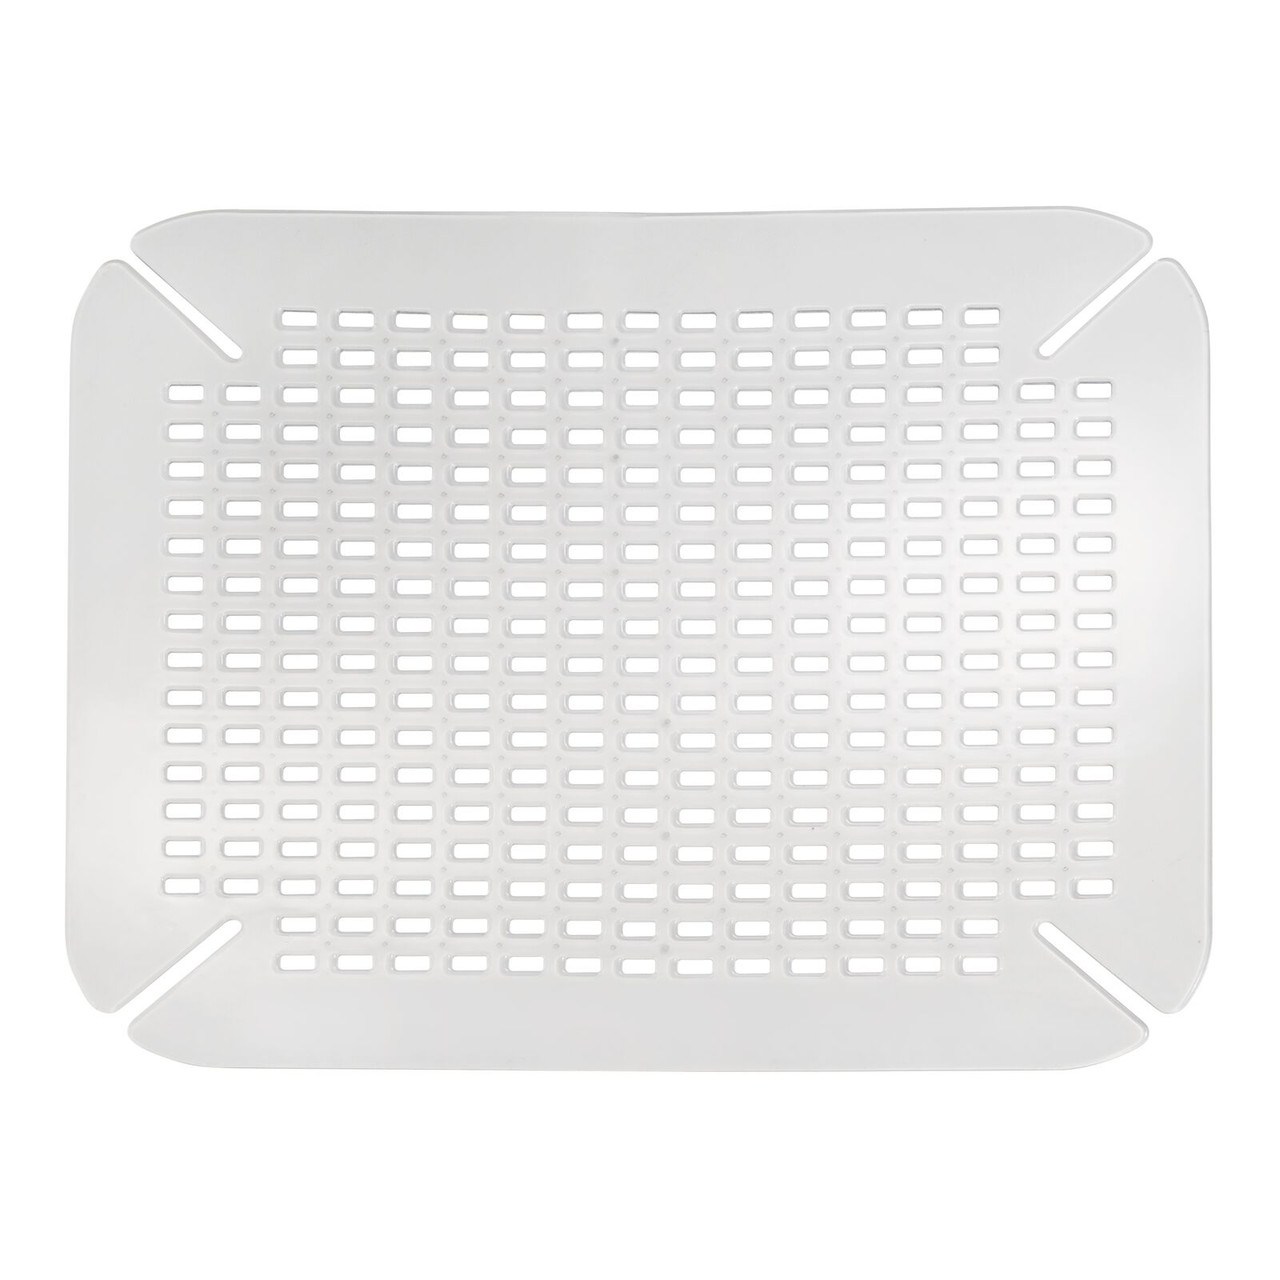 Black Mdesign Kitchen Sink Mat Extra Large Sink Protector For The Kitchen Pvc Sink Liner To Protect Sink Base And Crockery From Damage Cooking Dining Sink Mats Selincanta Com